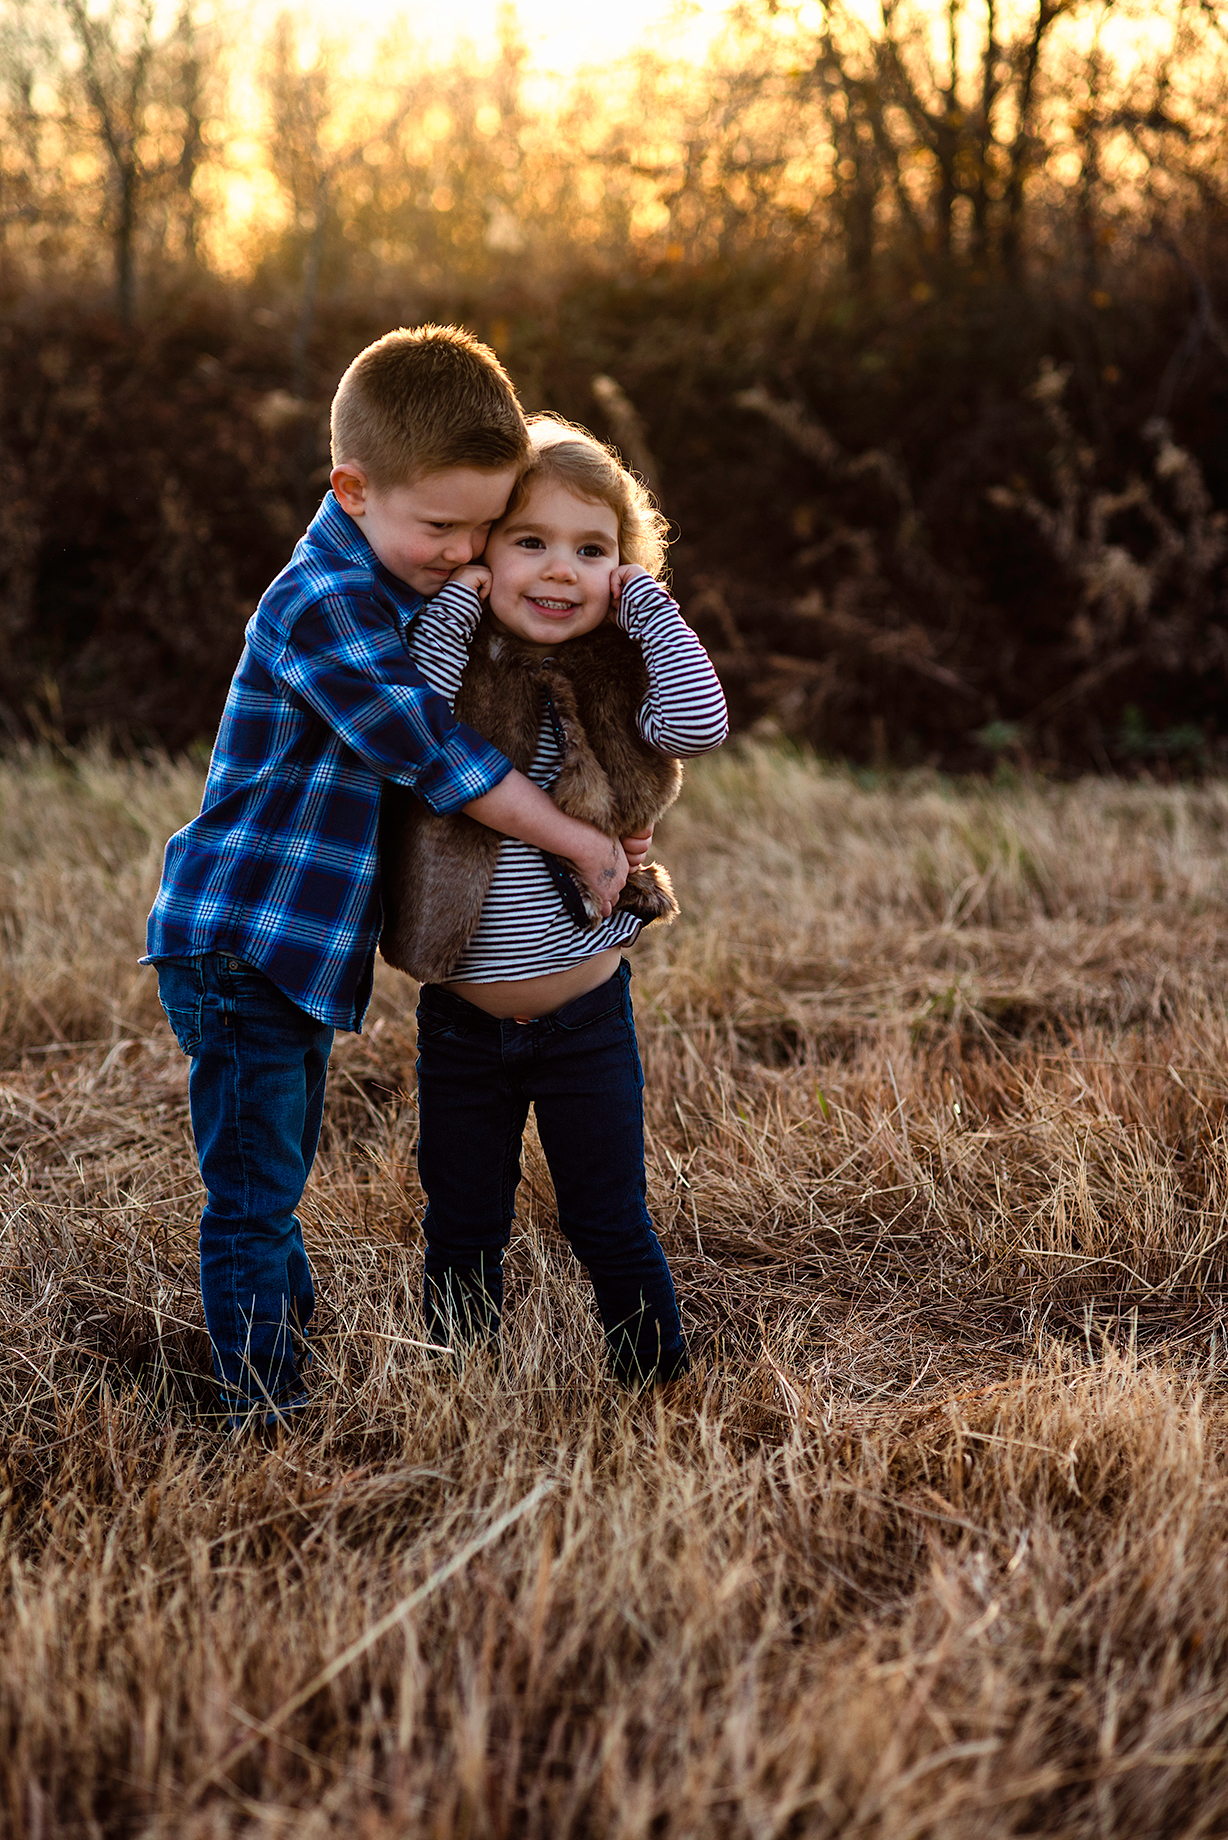 Toddler Photoshoot of Brother hugging Sister while she plugs her ears in McKinney Texas